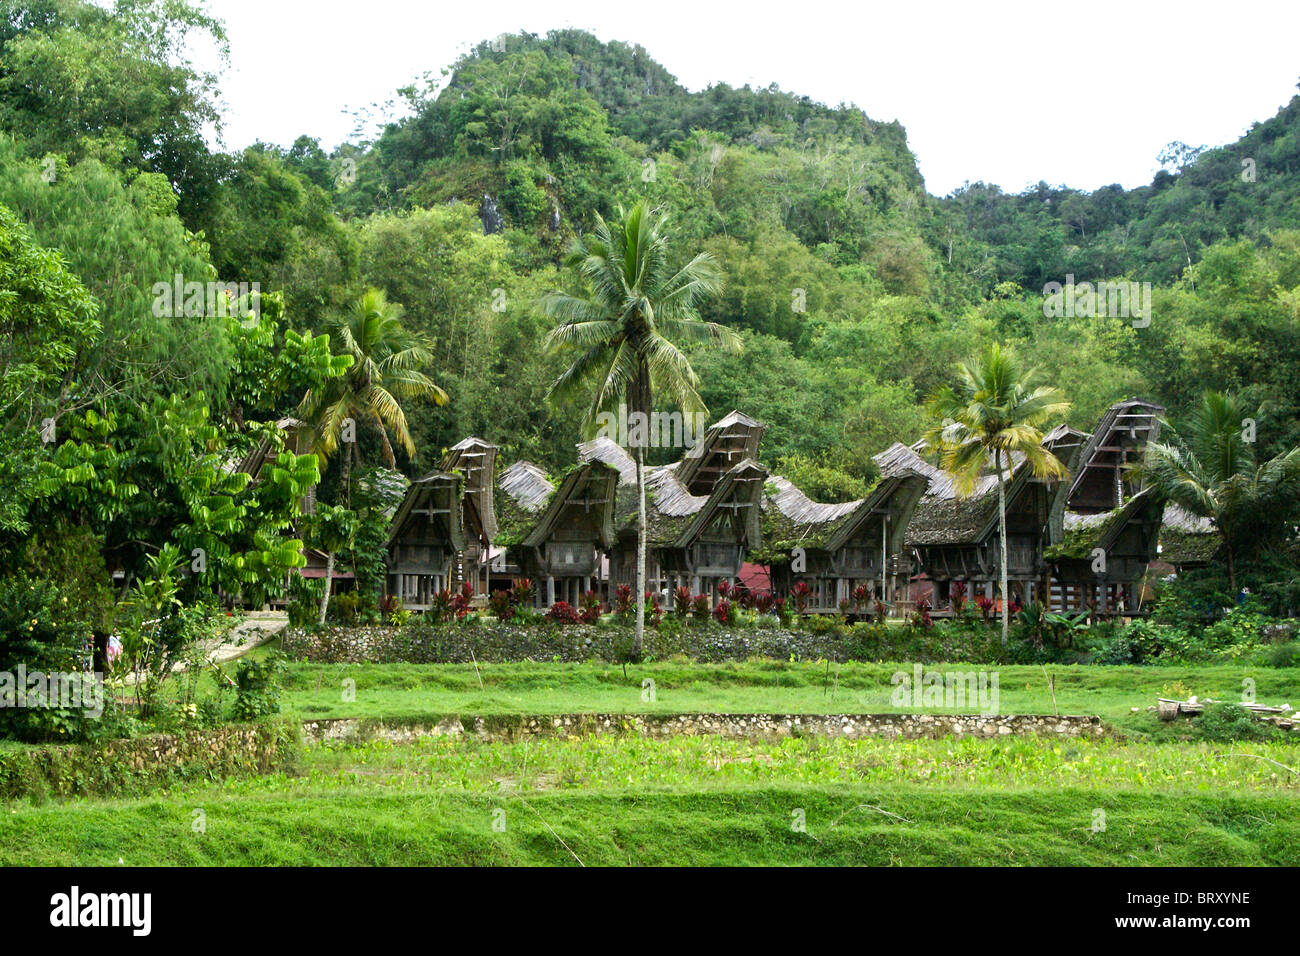 Kete Kesu traditional village, Tana Toraja, South Sulawesi, Indonesia - Stock Image